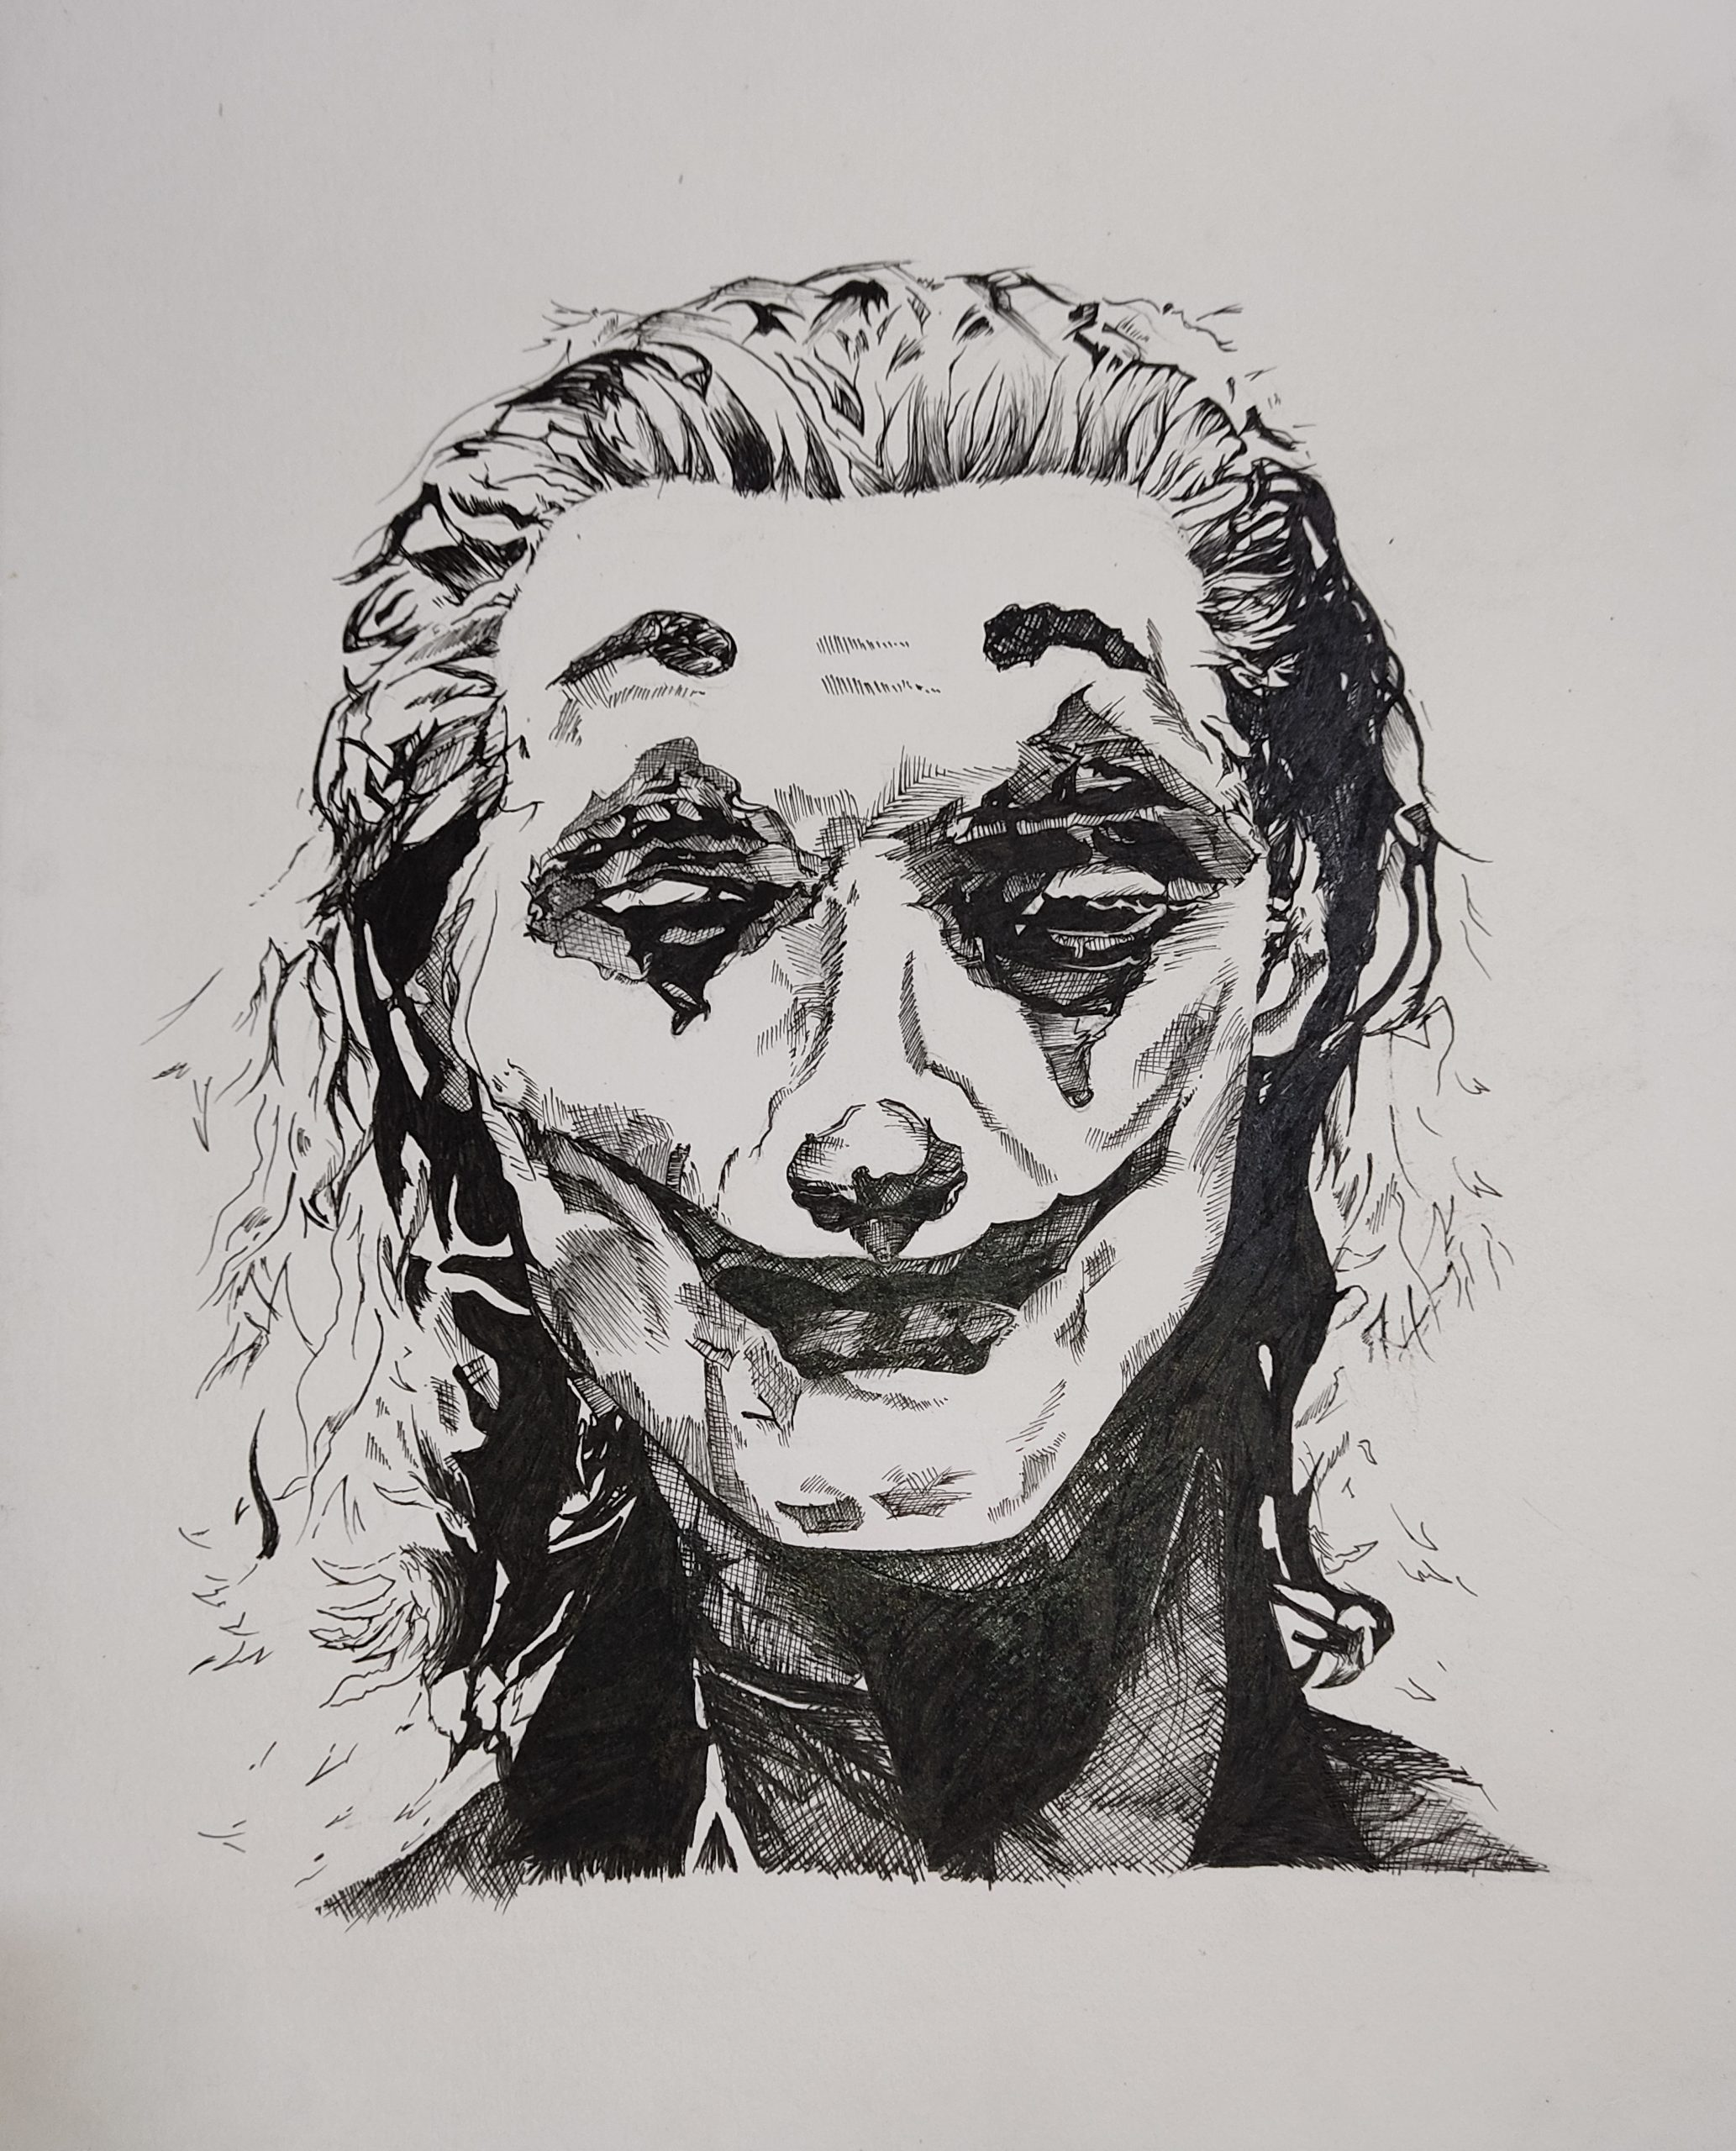 Pencil drawing of movie character joker